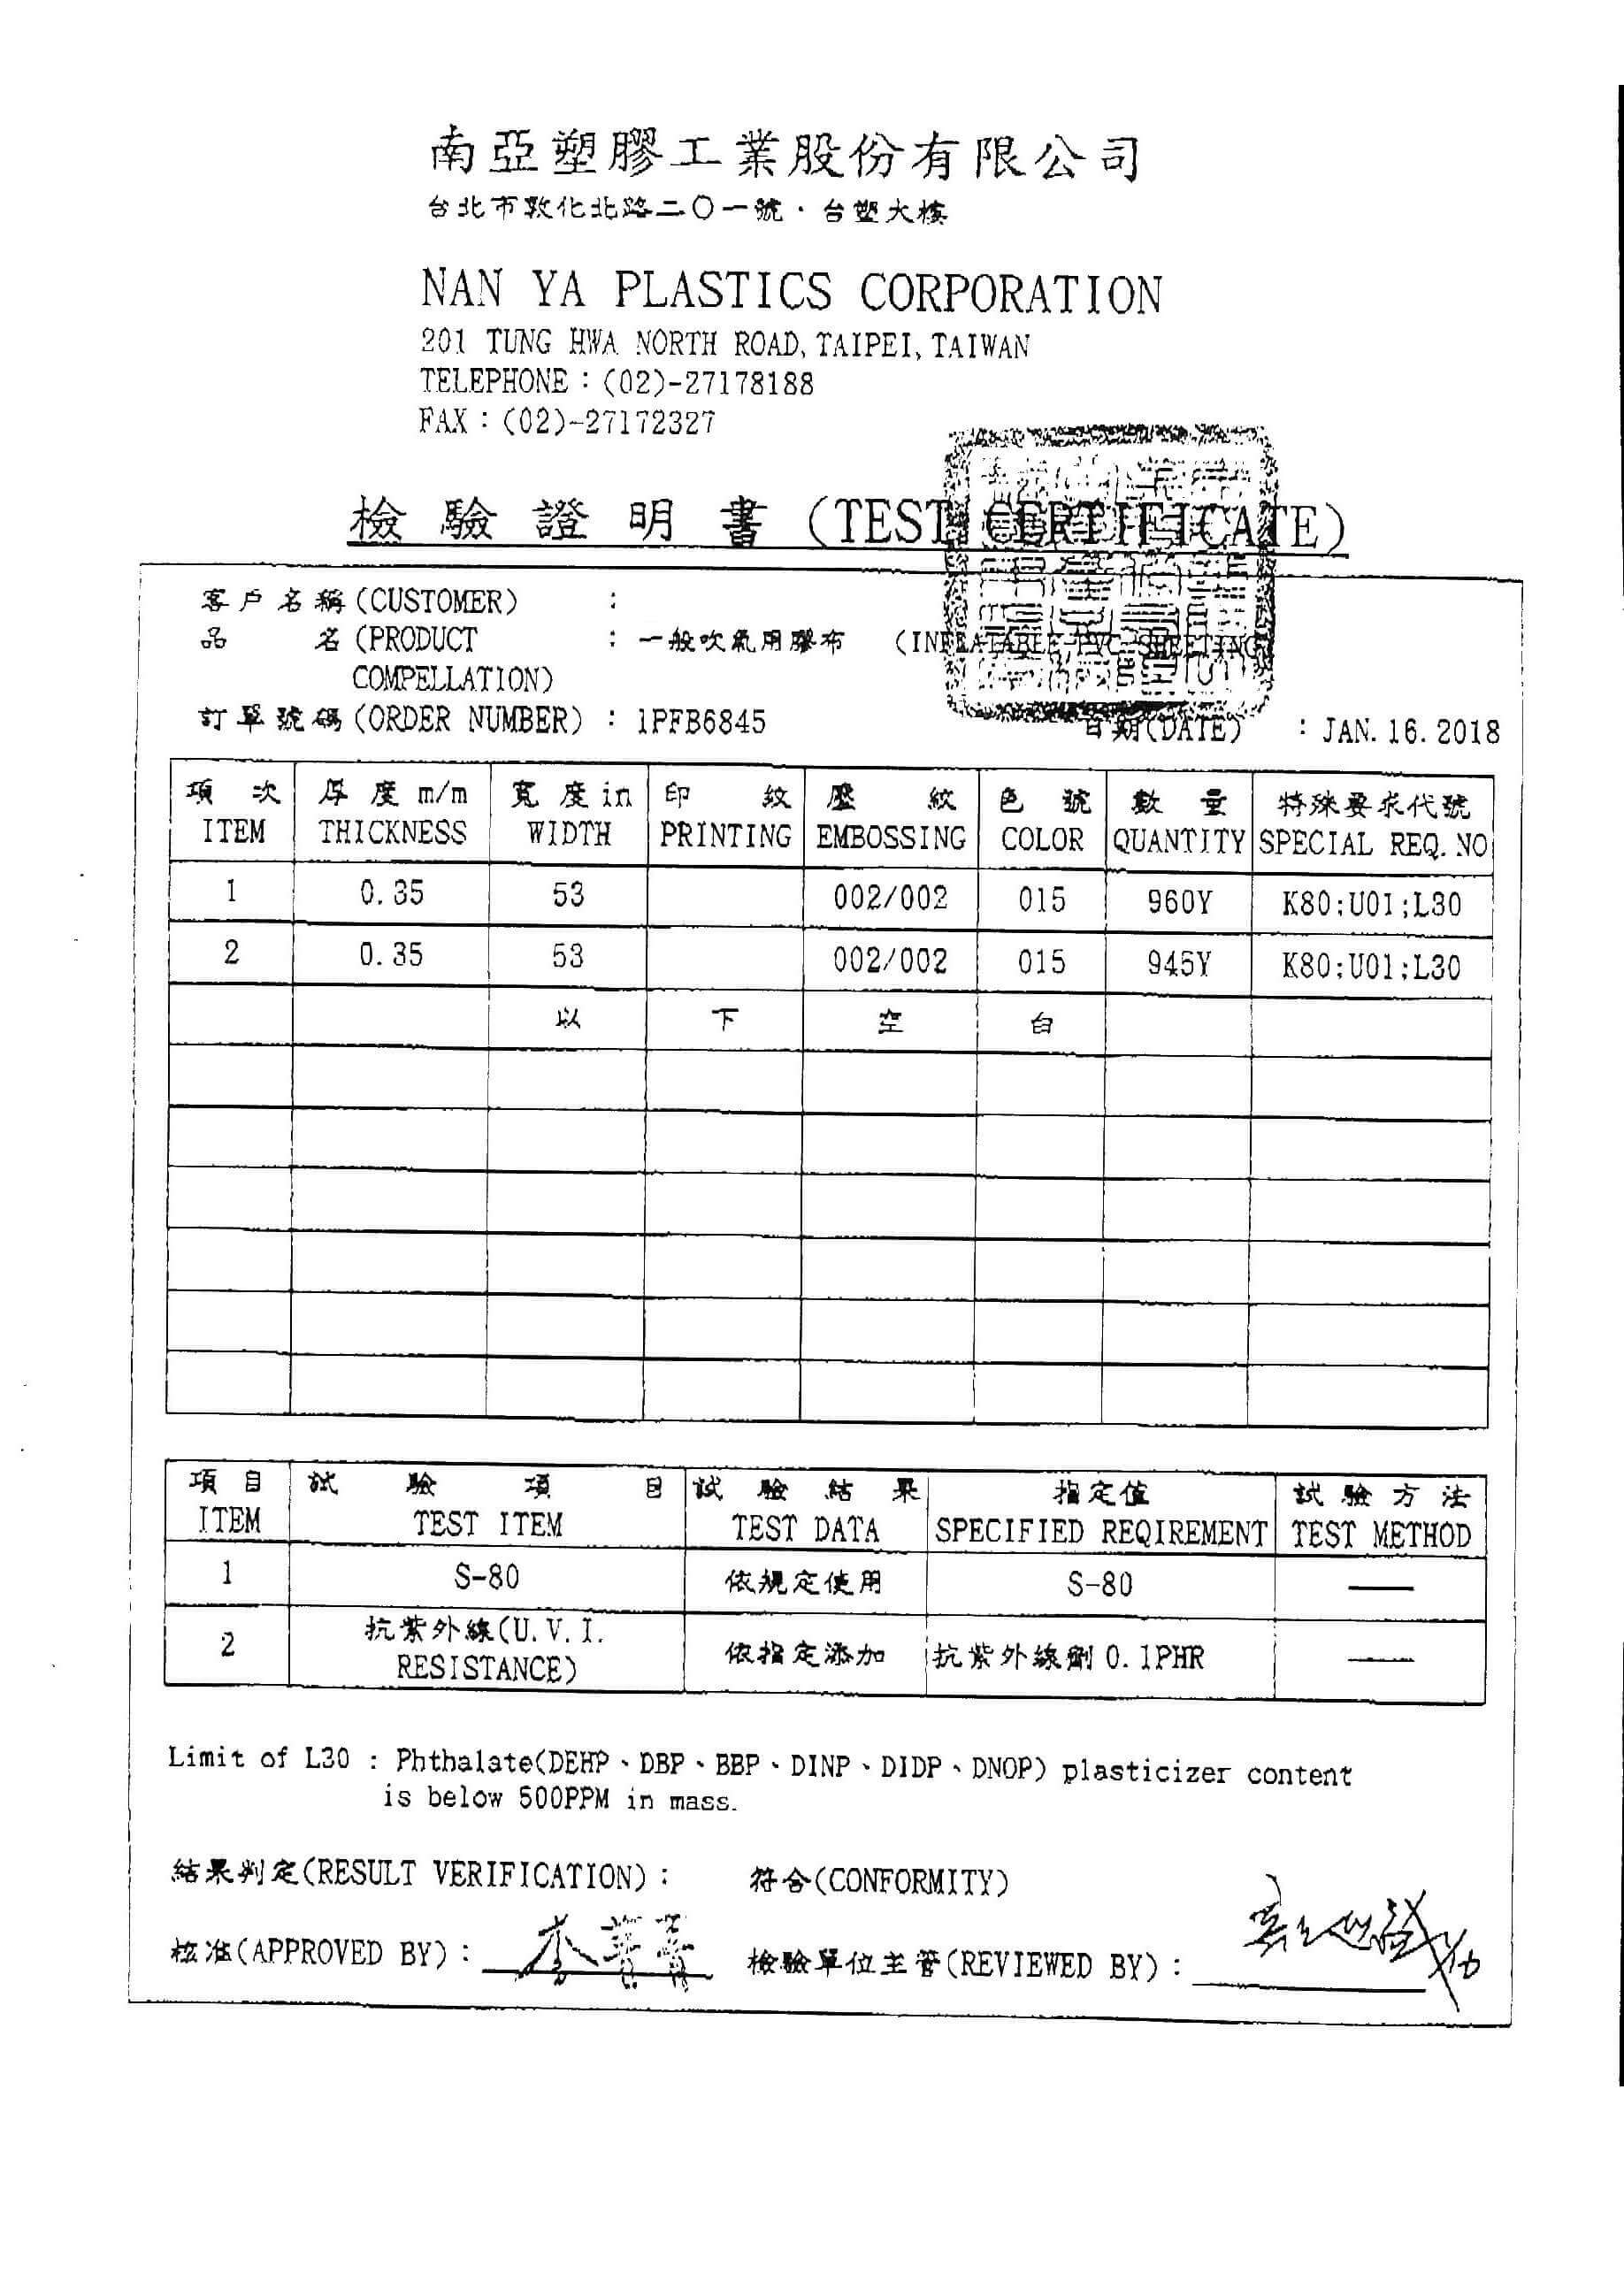 White PVC material report page 1白色PVC檢驗證明報告第一頁